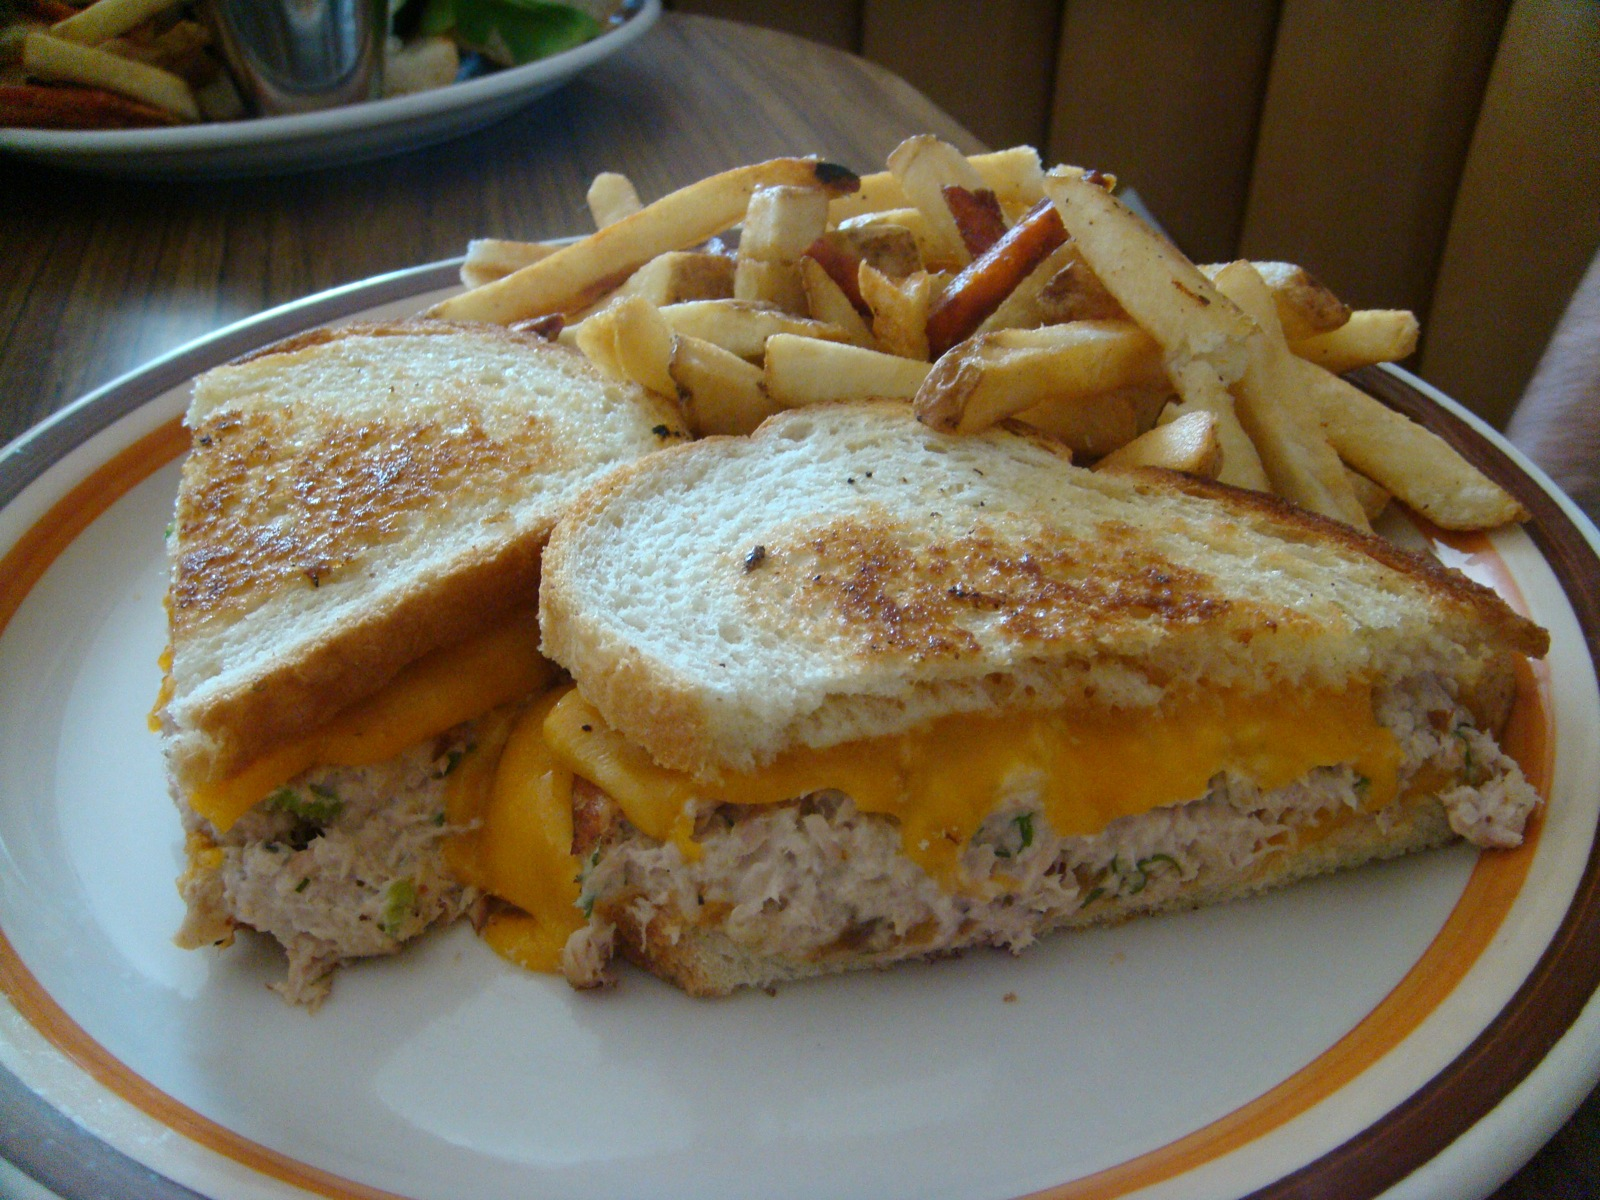 File:Tuna melt sandwich with fries.jpg - Wikimedia Commons